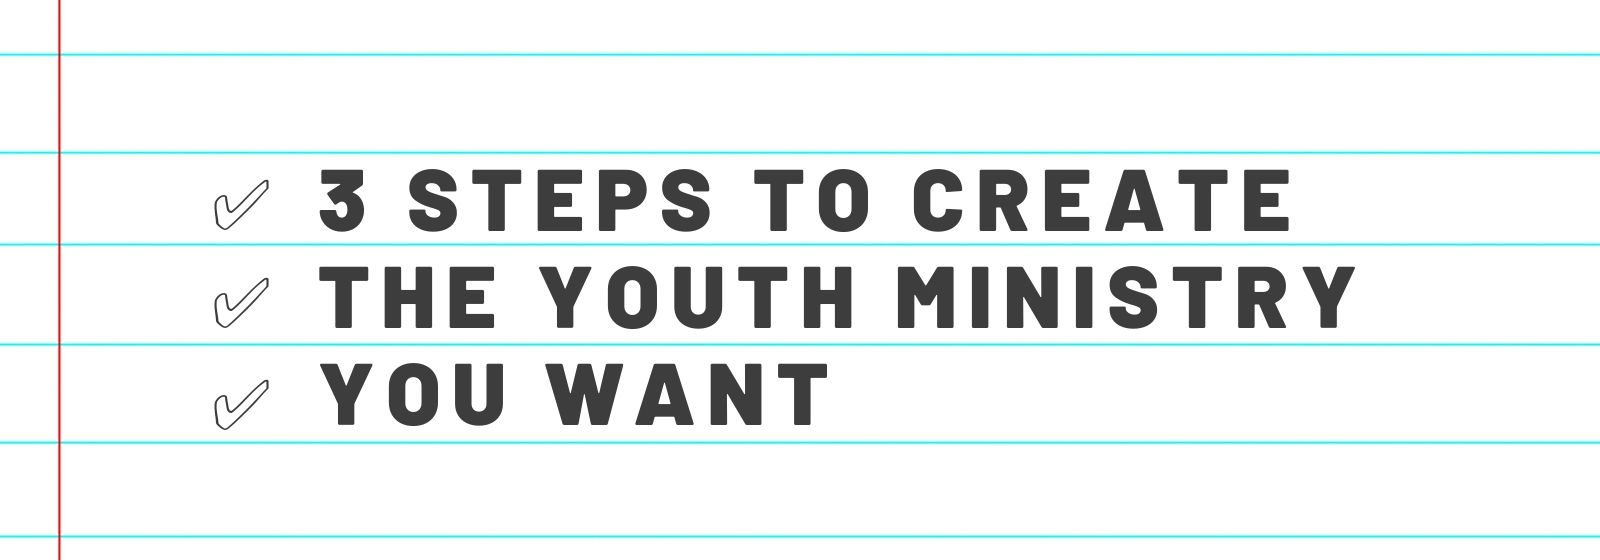 3 steps to create dream youth ministry